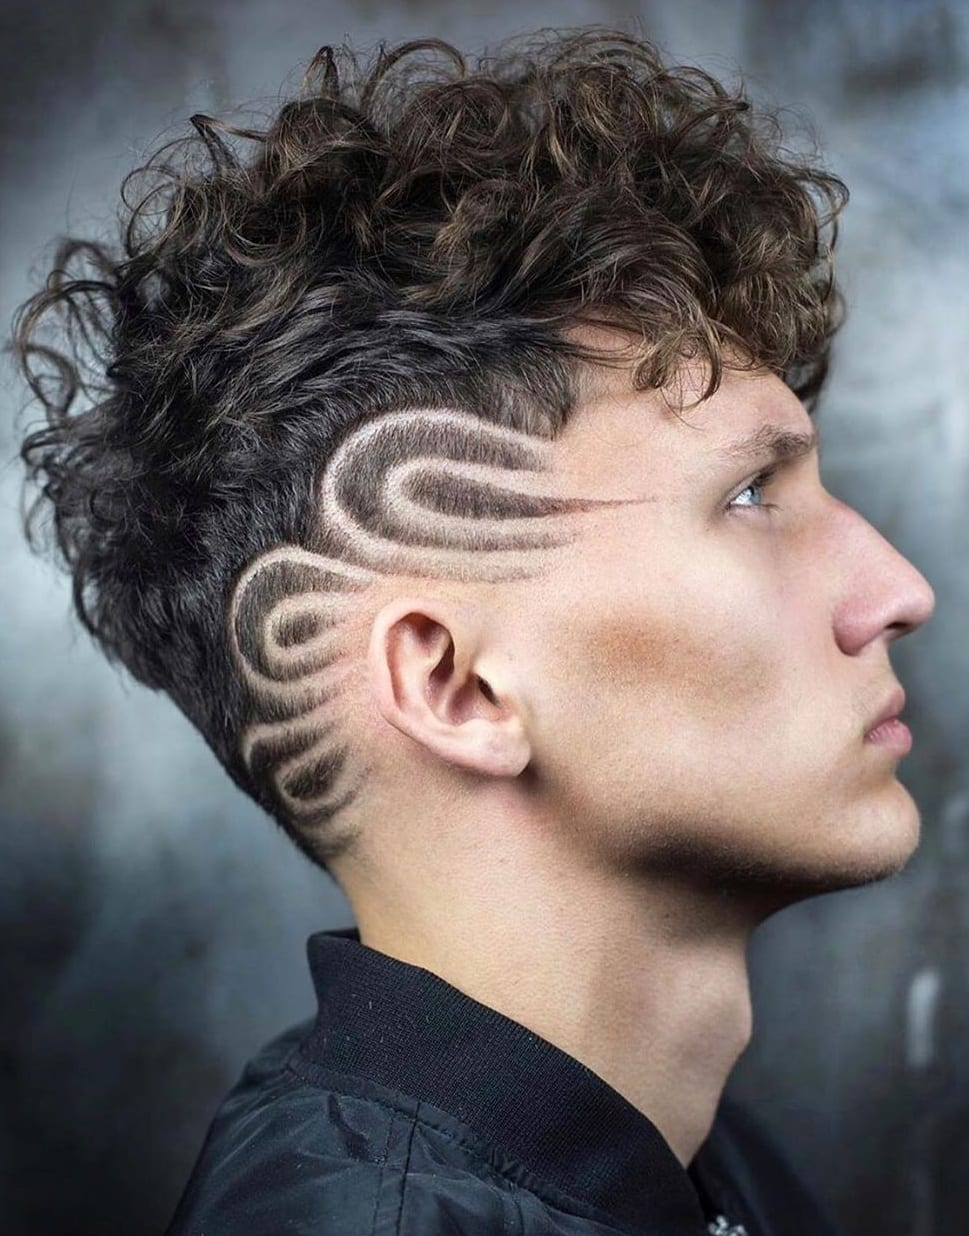 Fade Design Haircut for Men to rock in 2020